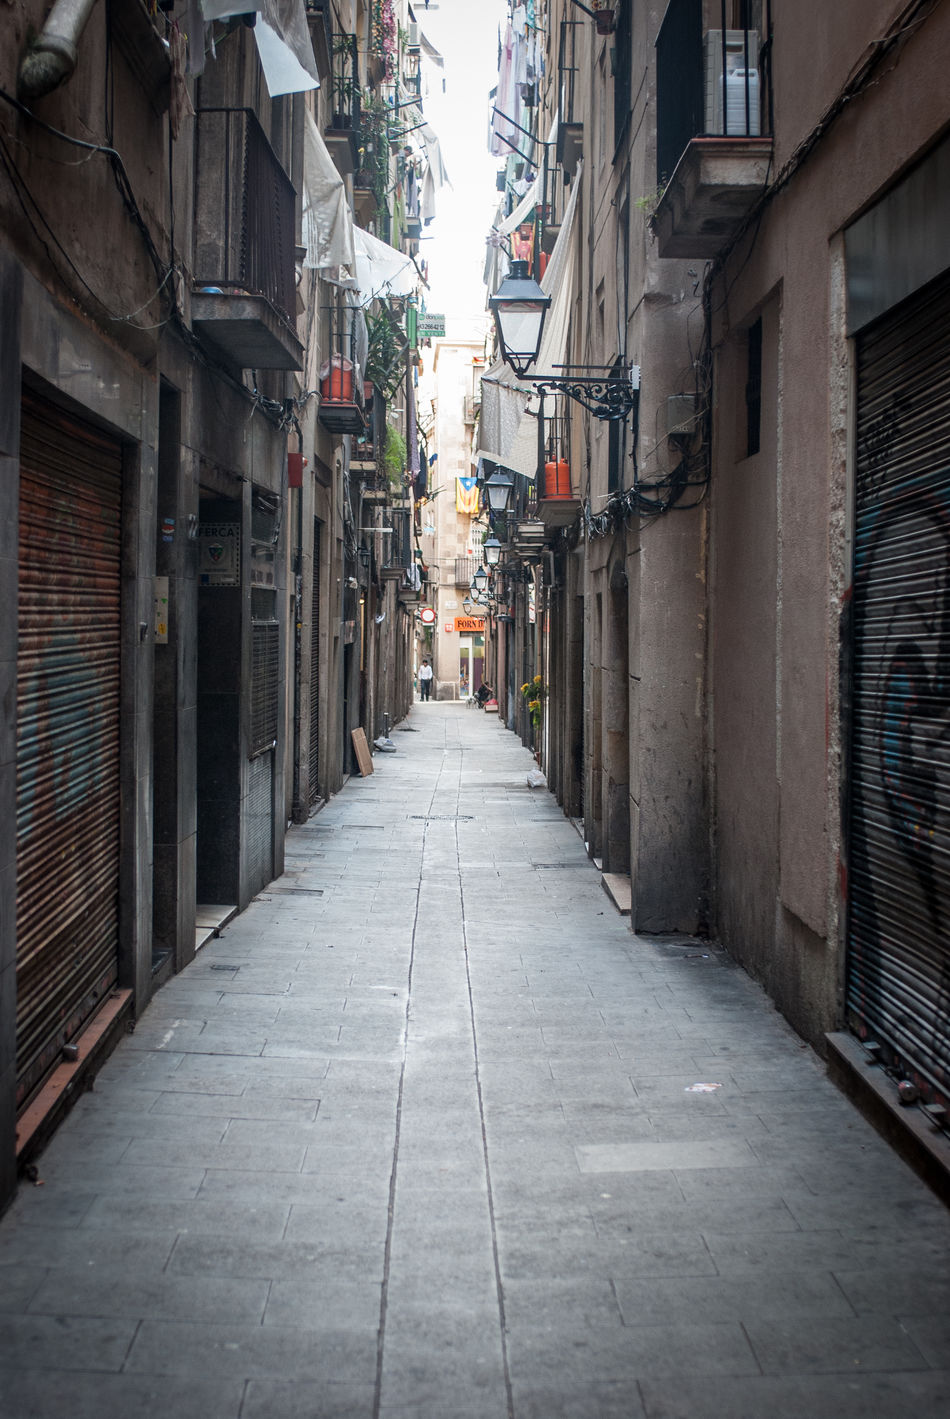 Alley Architecture Barcelona Building Exterior Built Structure City Day House Narrow No People Old Town Outdoors Residential Building Street The Way Forward Tiny Street Travel Destinations